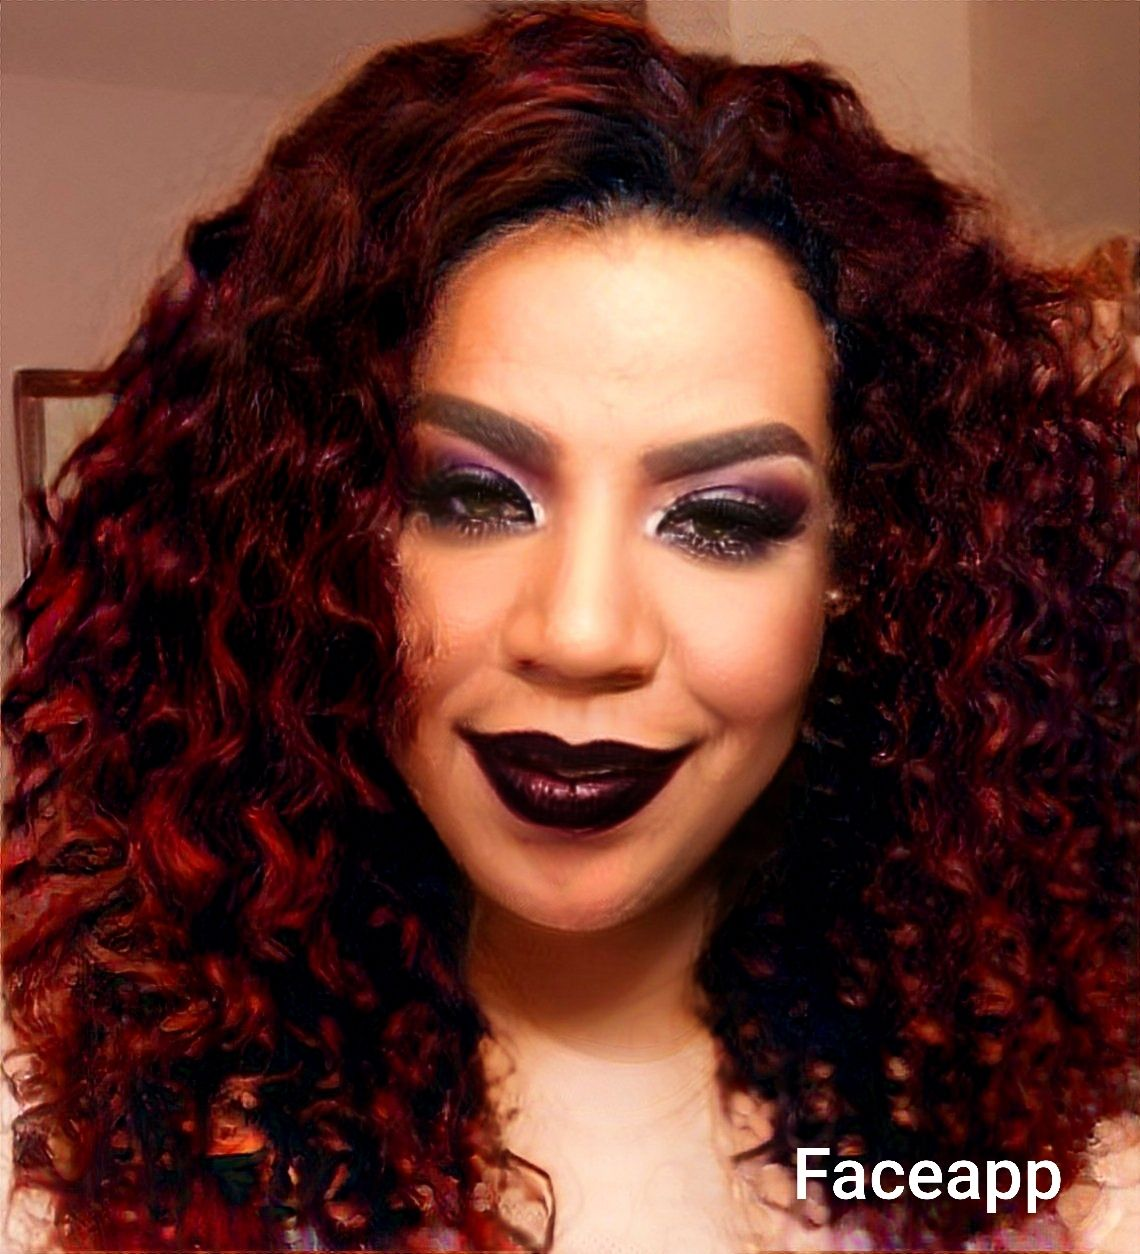 Free nudes of FemboyBlackCD onlyfans leaked